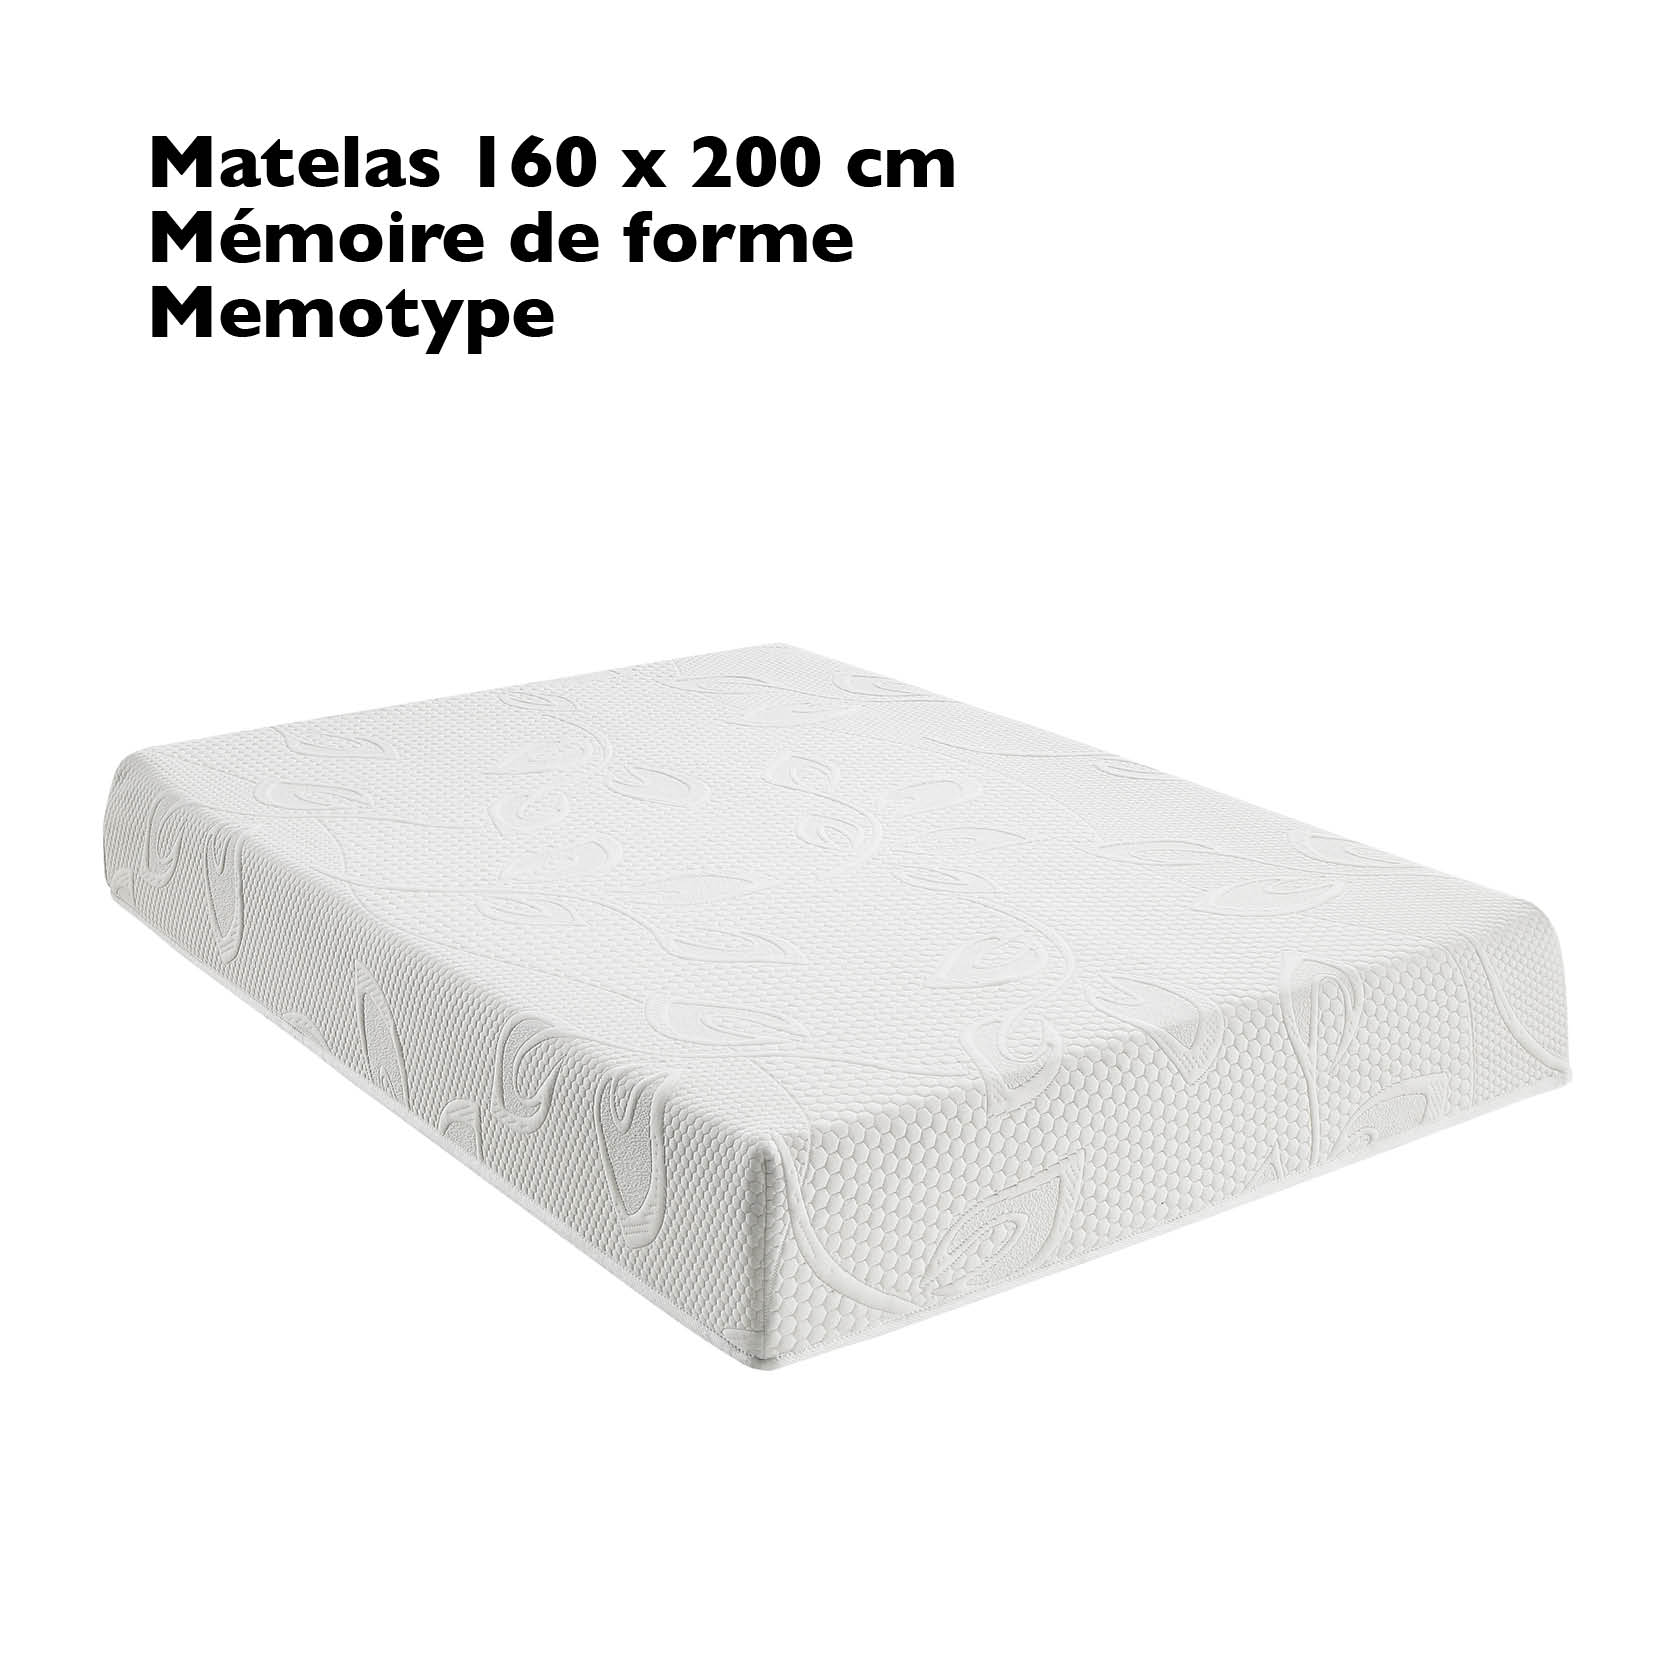 matelas mousse 160 x 200 chf 499 matelas n1. Black Bedroom Furniture Sets. Home Design Ideas